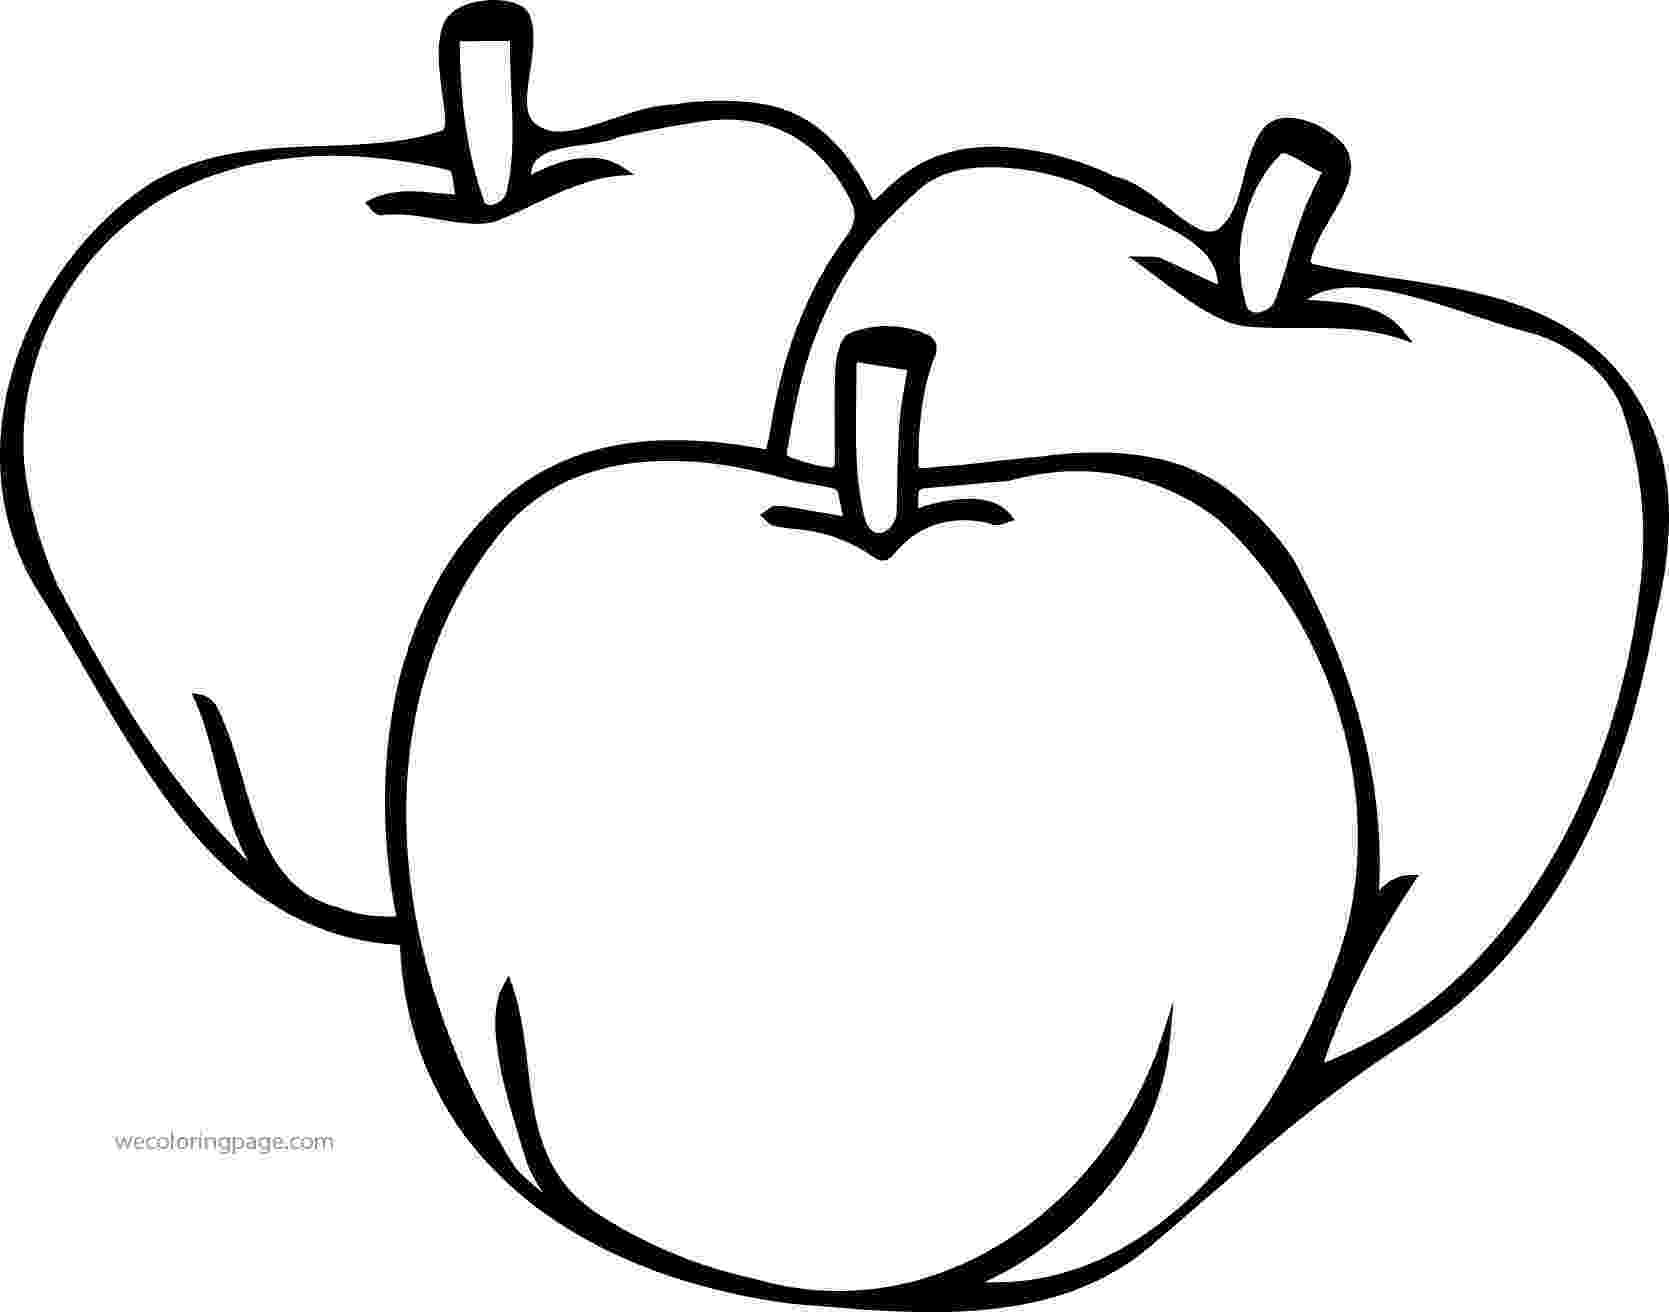 coloring apples color the apples coloring page twisty noodle coloring apples